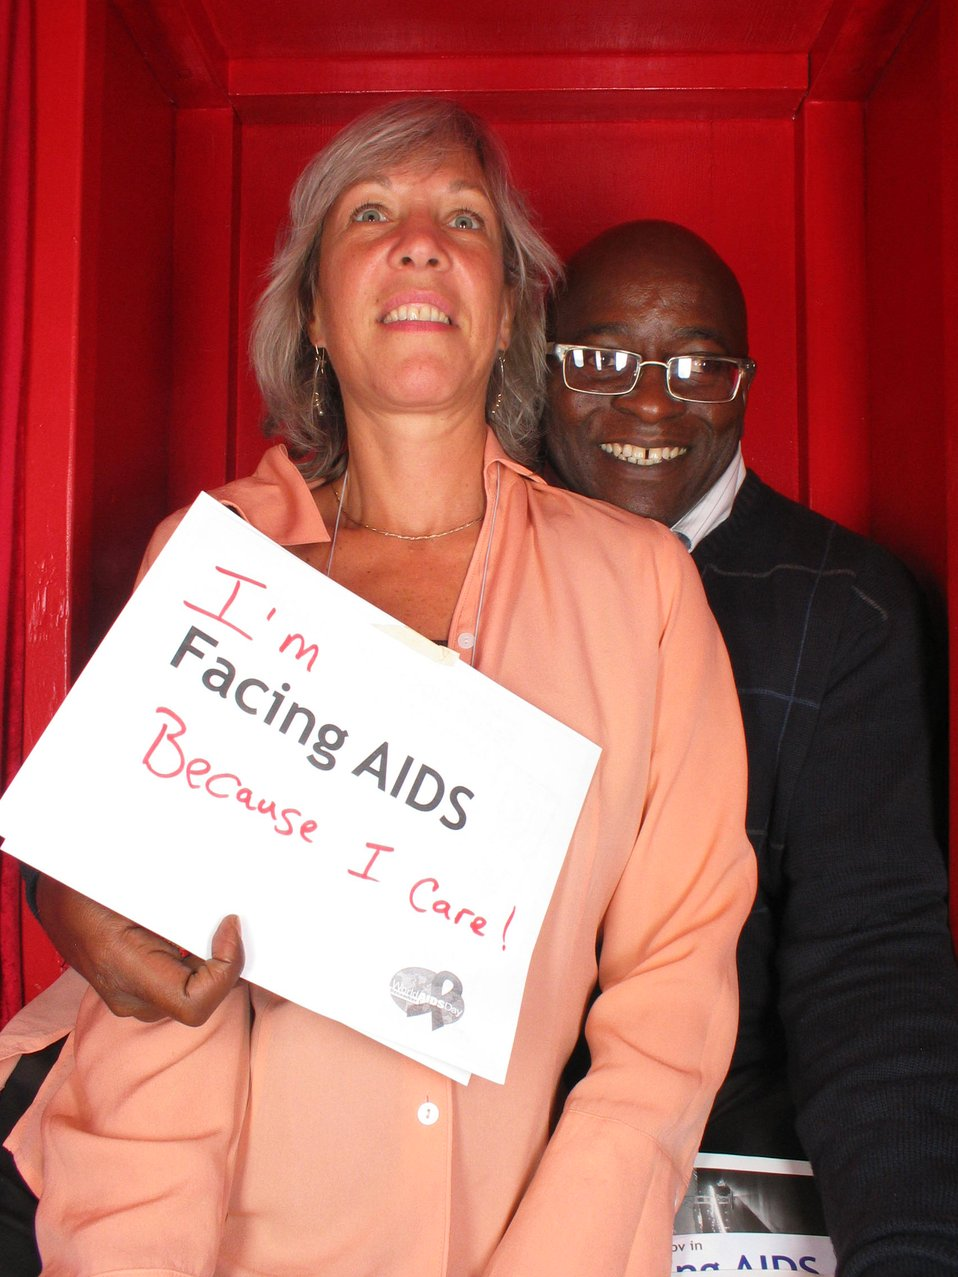 I am Facing AIDS because I care!